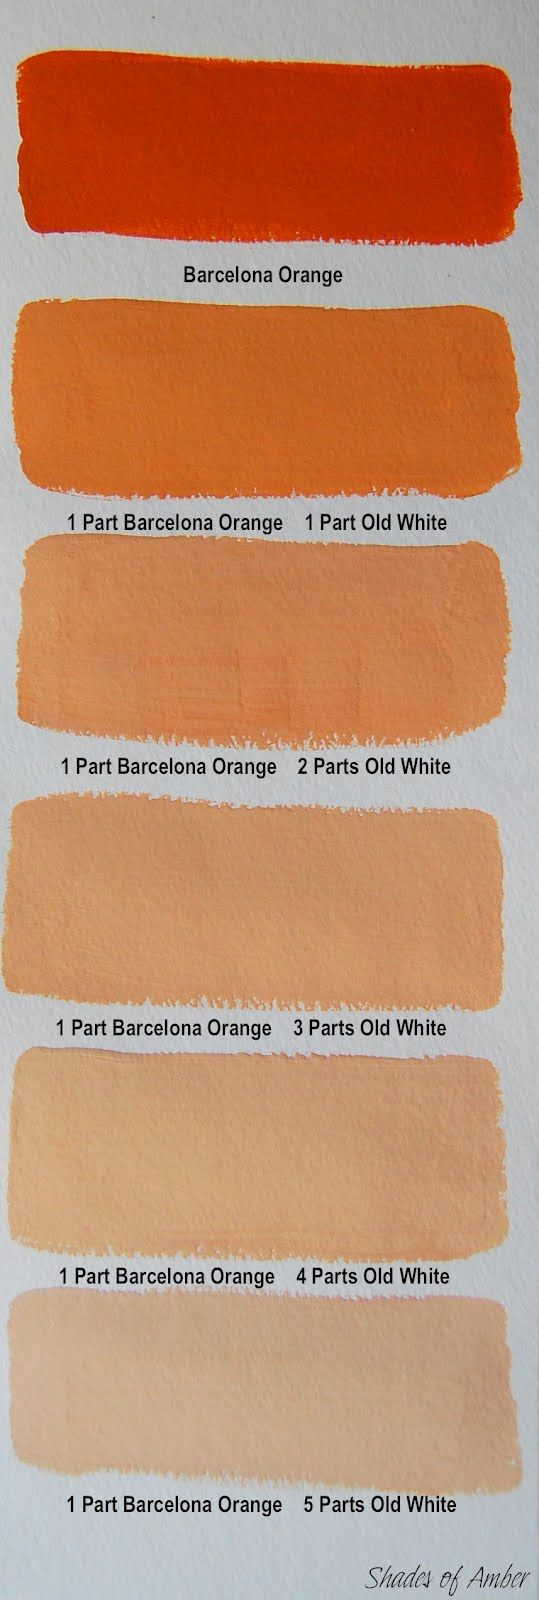 Shades of Amber: Chalk Paint Color Theory - Barcelona Orange